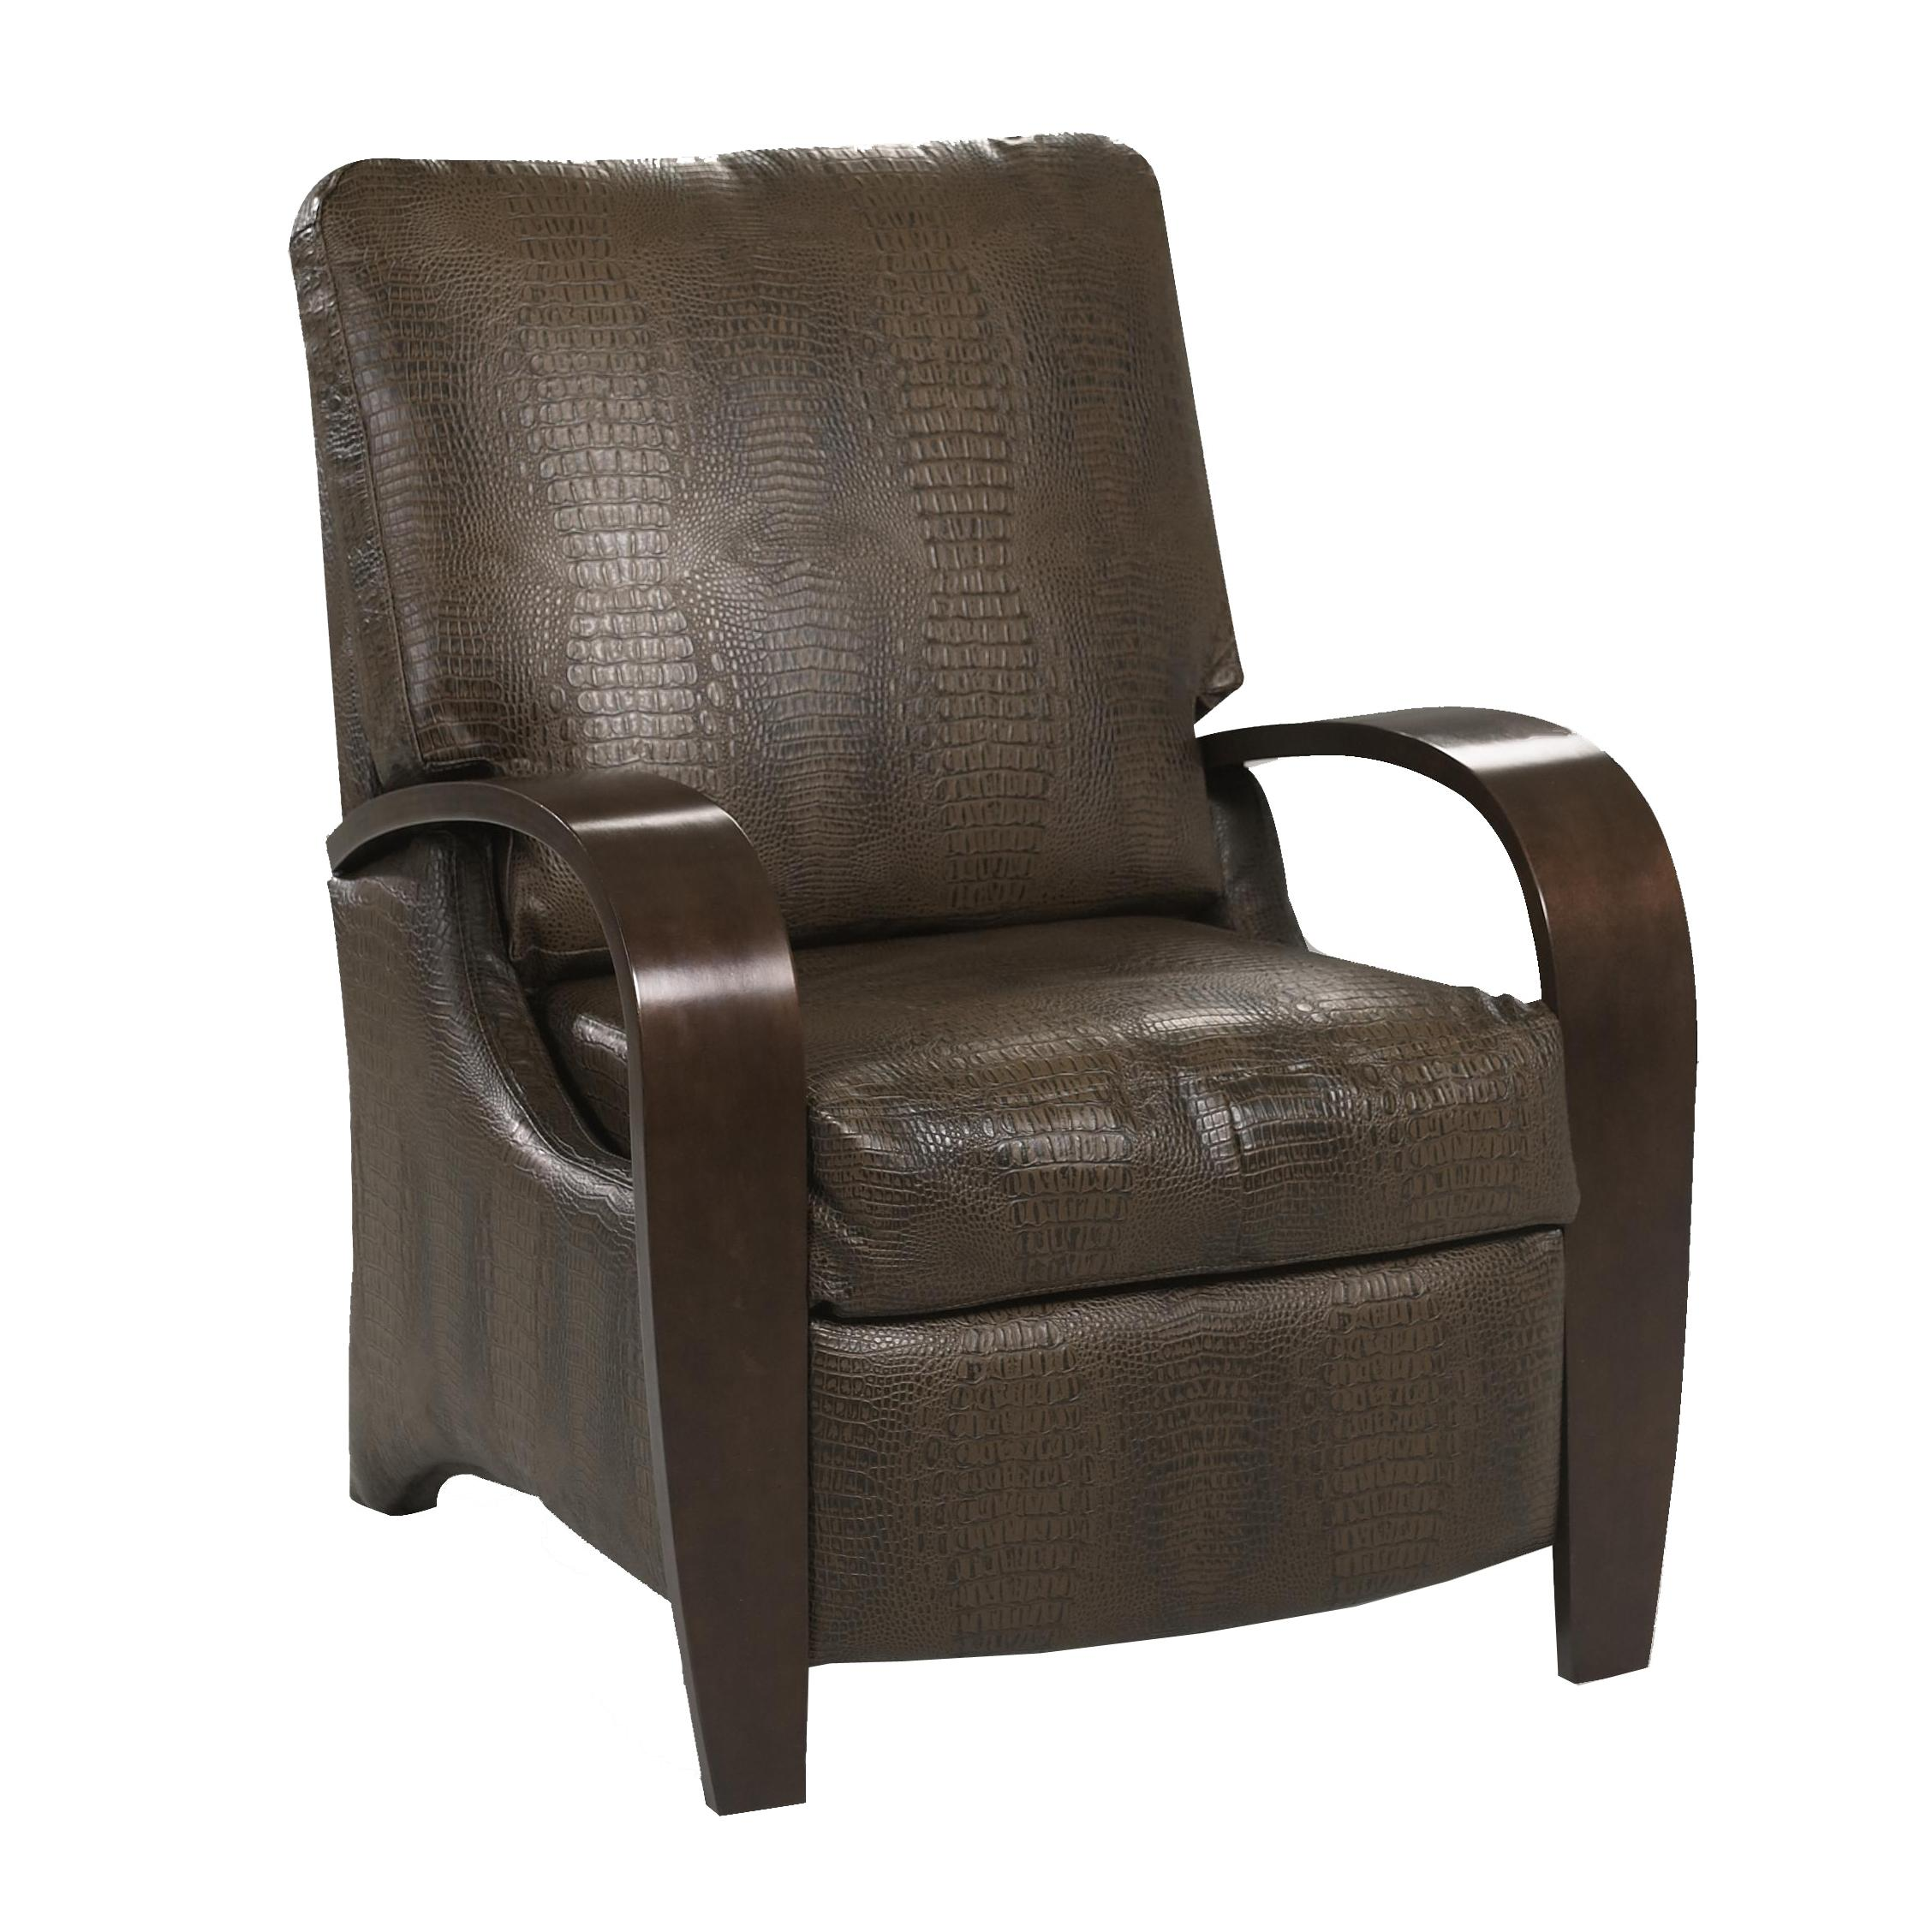 bent product arm madison blue overstock brydon shipping park today free home garden recliner